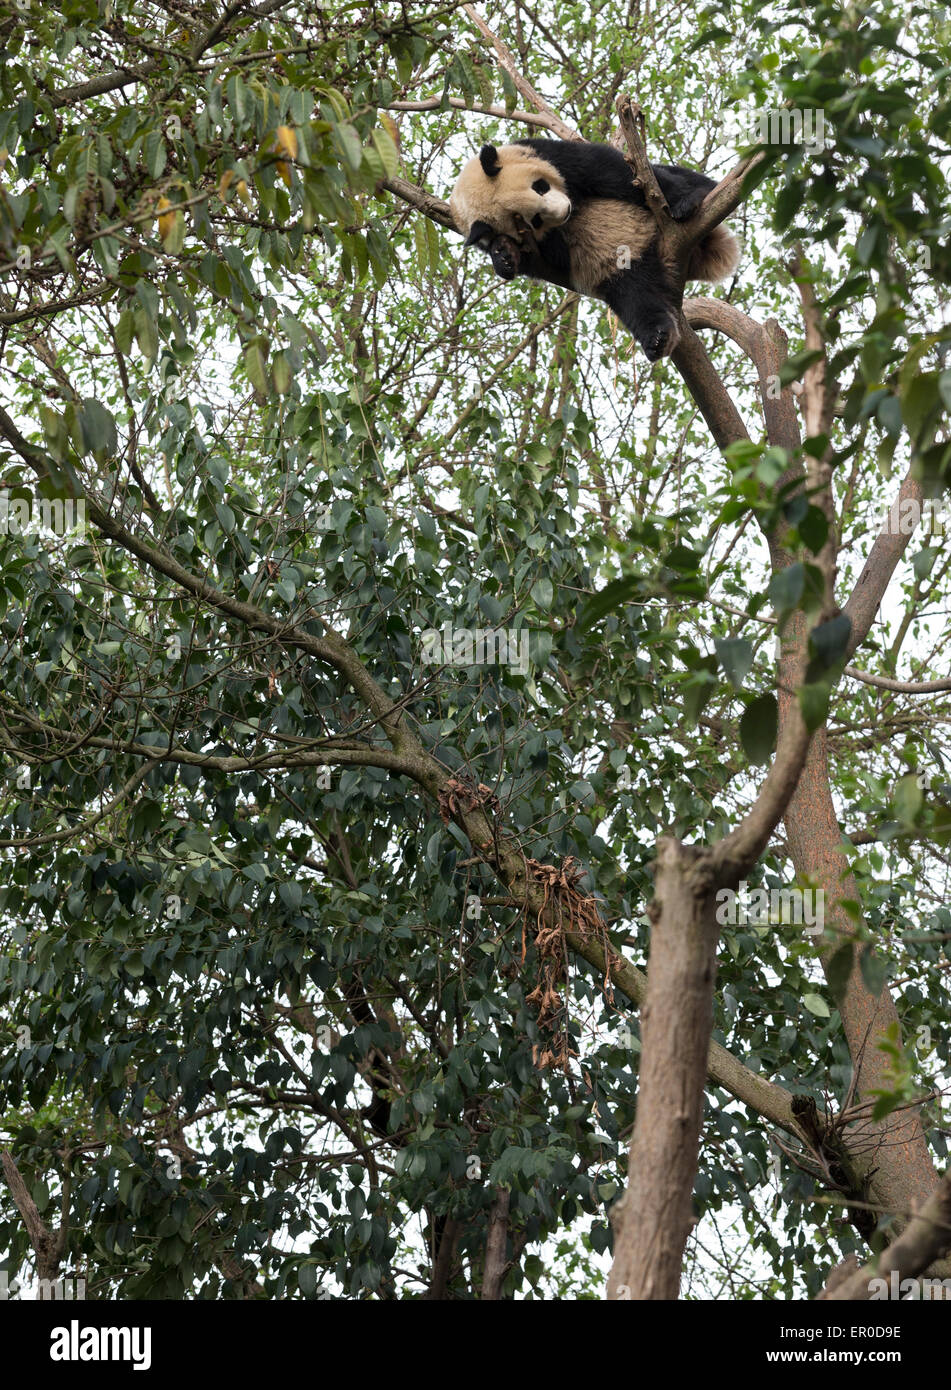 Giant panda (Ailuropoda melanoleuca) asleep a long way up a tree at Chengdu Panda Breeding and Research Center - Stock Image